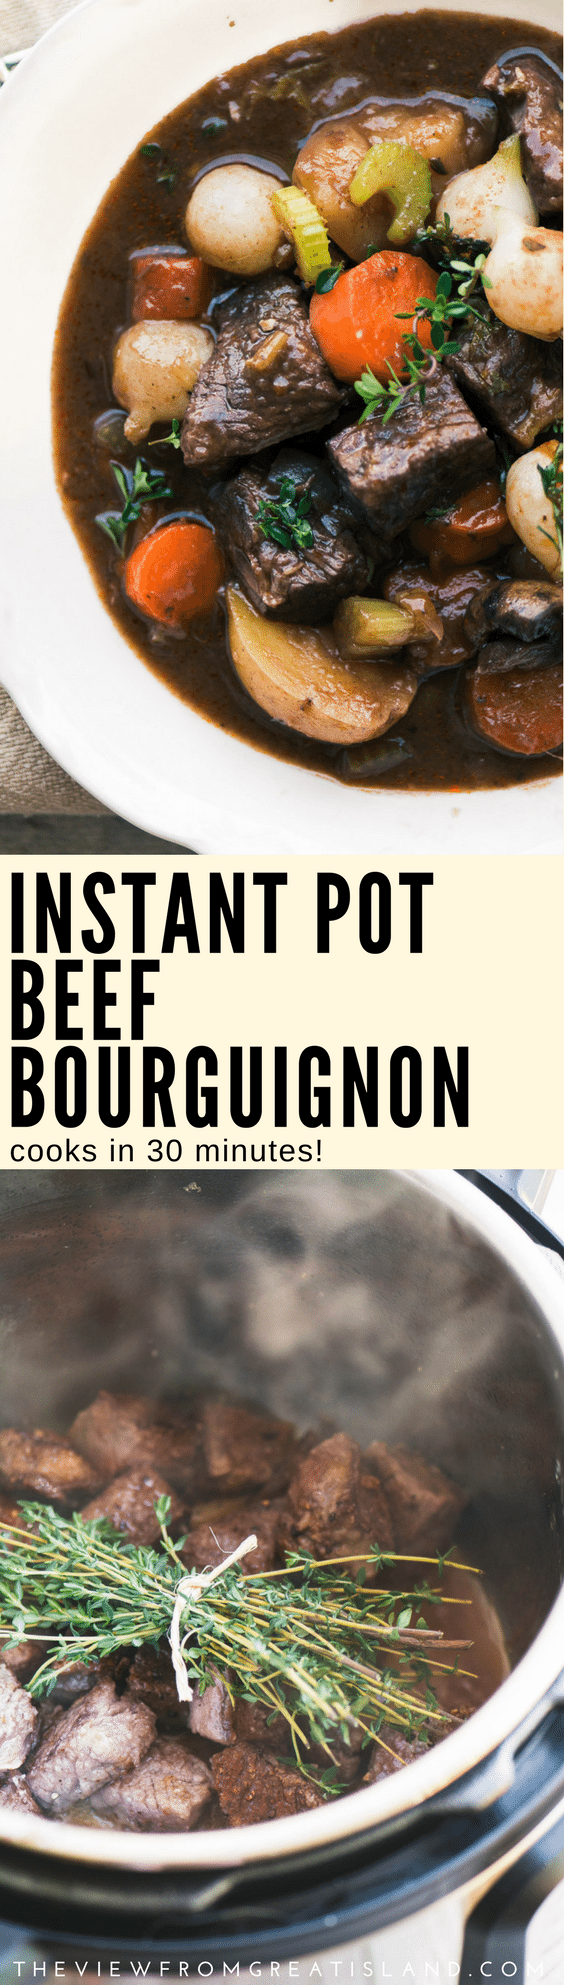 brThe Best Instant Pot Beef Bourguignon ~ this epic beef stew cooks in just 30 minutes in the amazing Instant Pot. The meat is melt in your mouth tender and the famous French flavors shine through ~ don't miss this one! #stew #instantpot #pressurecookerstew #beef #beefstew #angusbeef #dinner #maincourse #bestbeefstew #easybeefstew #French #bourguignon #redwinestew